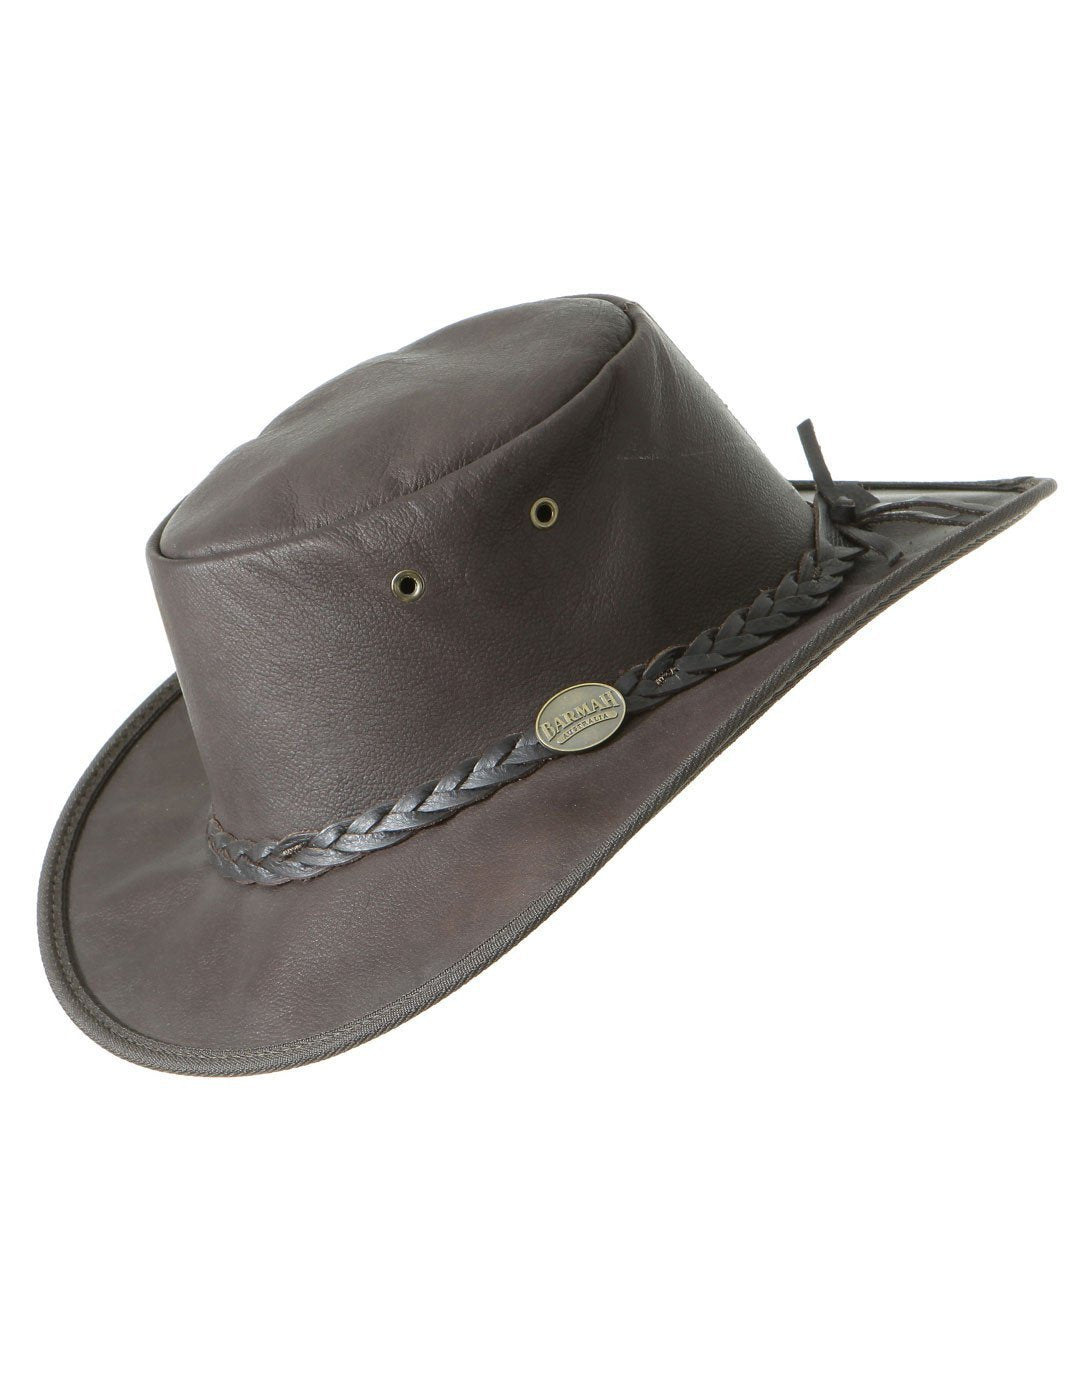 Image of Barmah Sundowner Roo Hat - Dark Brown